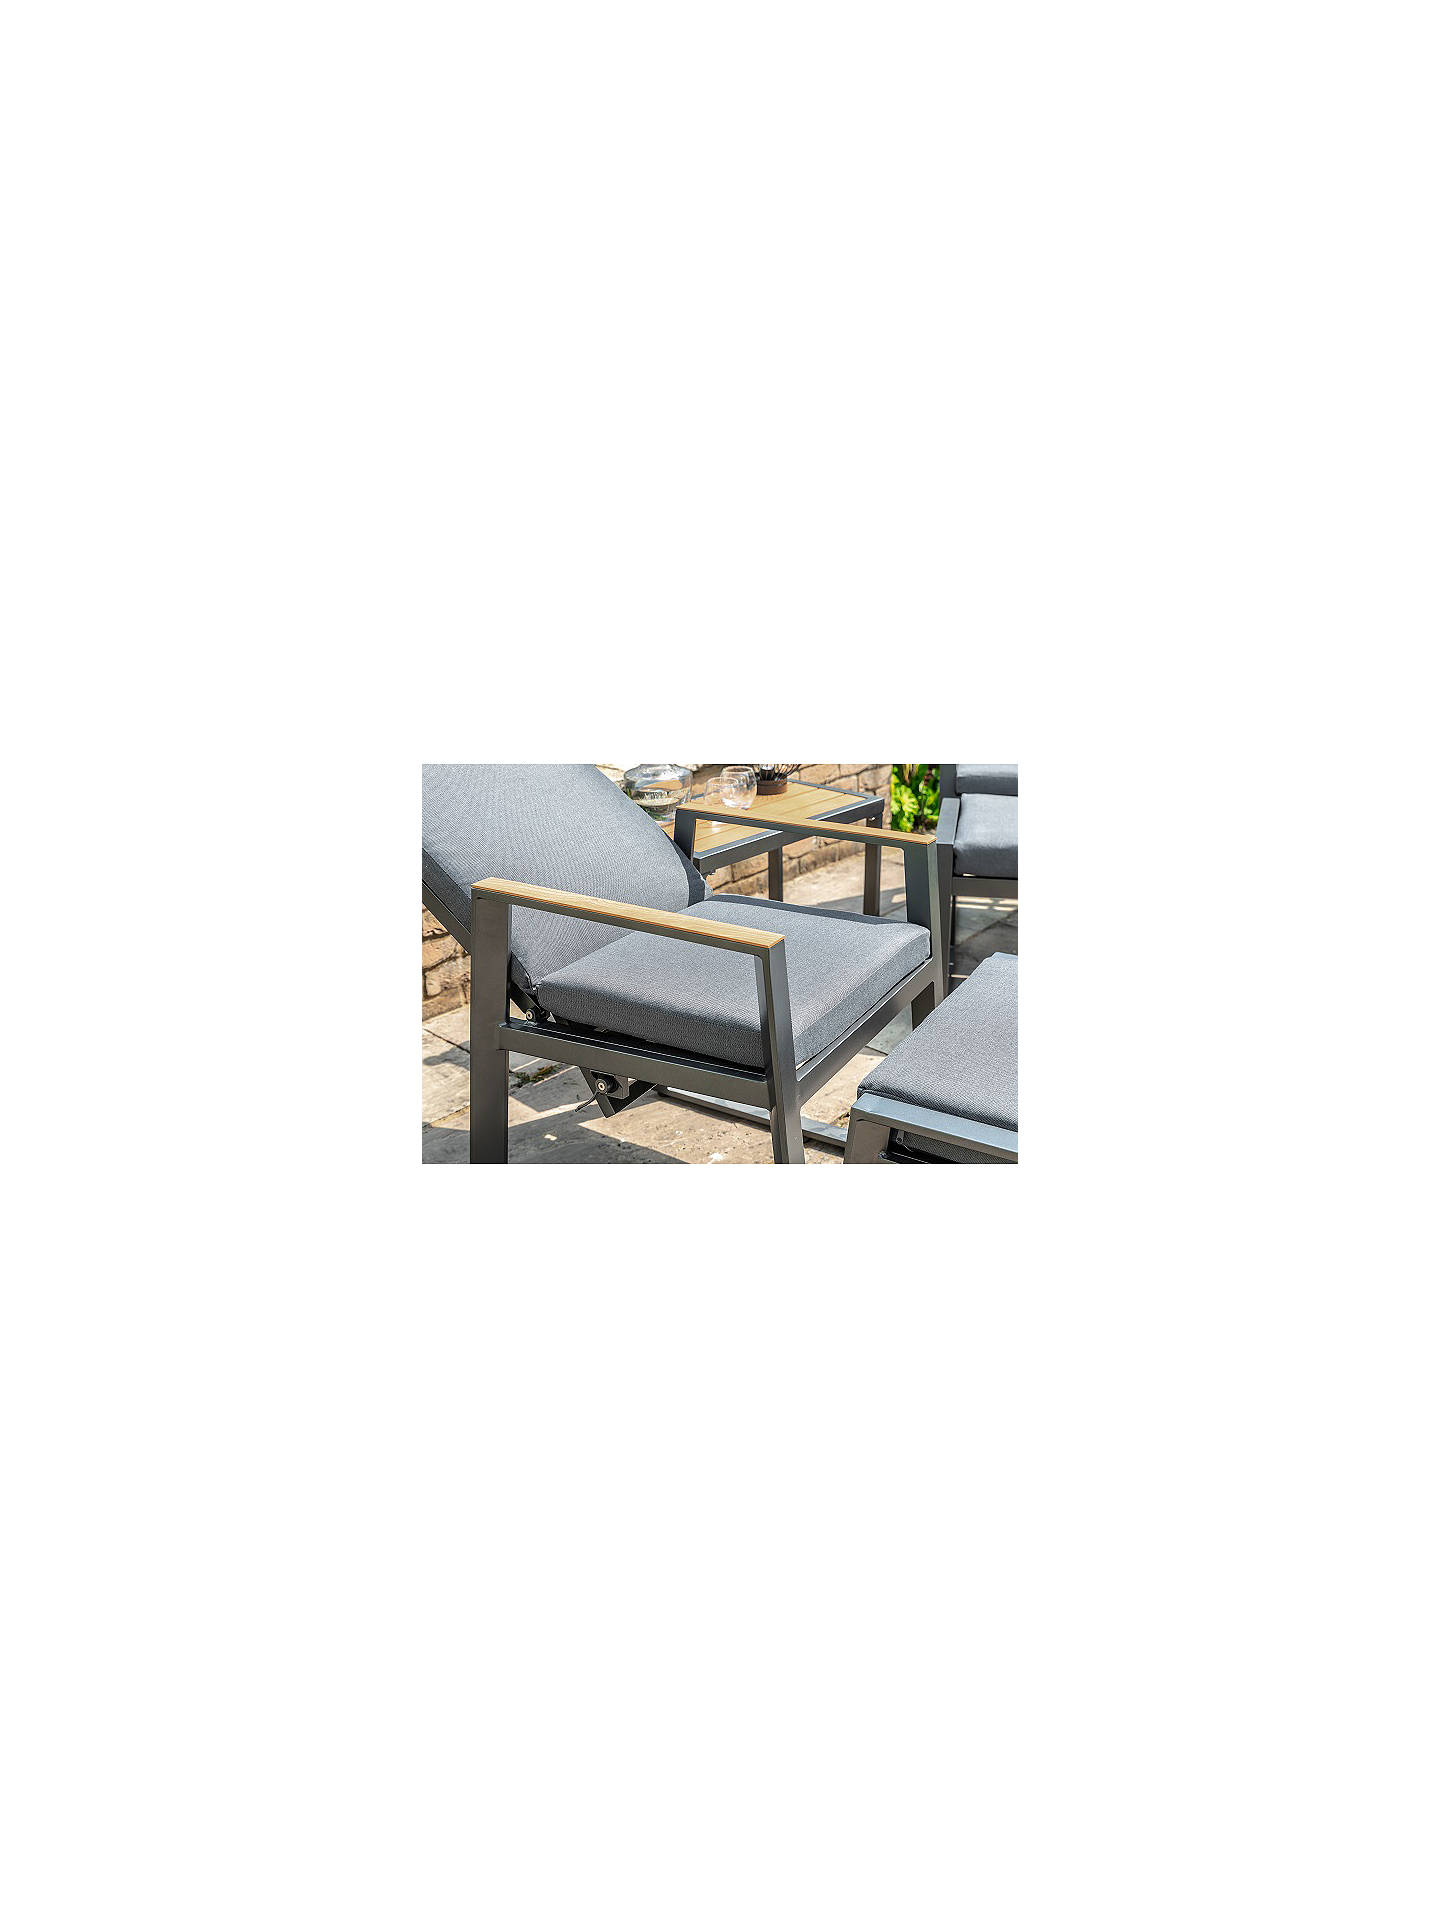 Buy LG Outdoor Roma 2-Seat Garden Table & Reclining Chairs Relaxing Set, Anthracite Grey Online at johnlewis.com